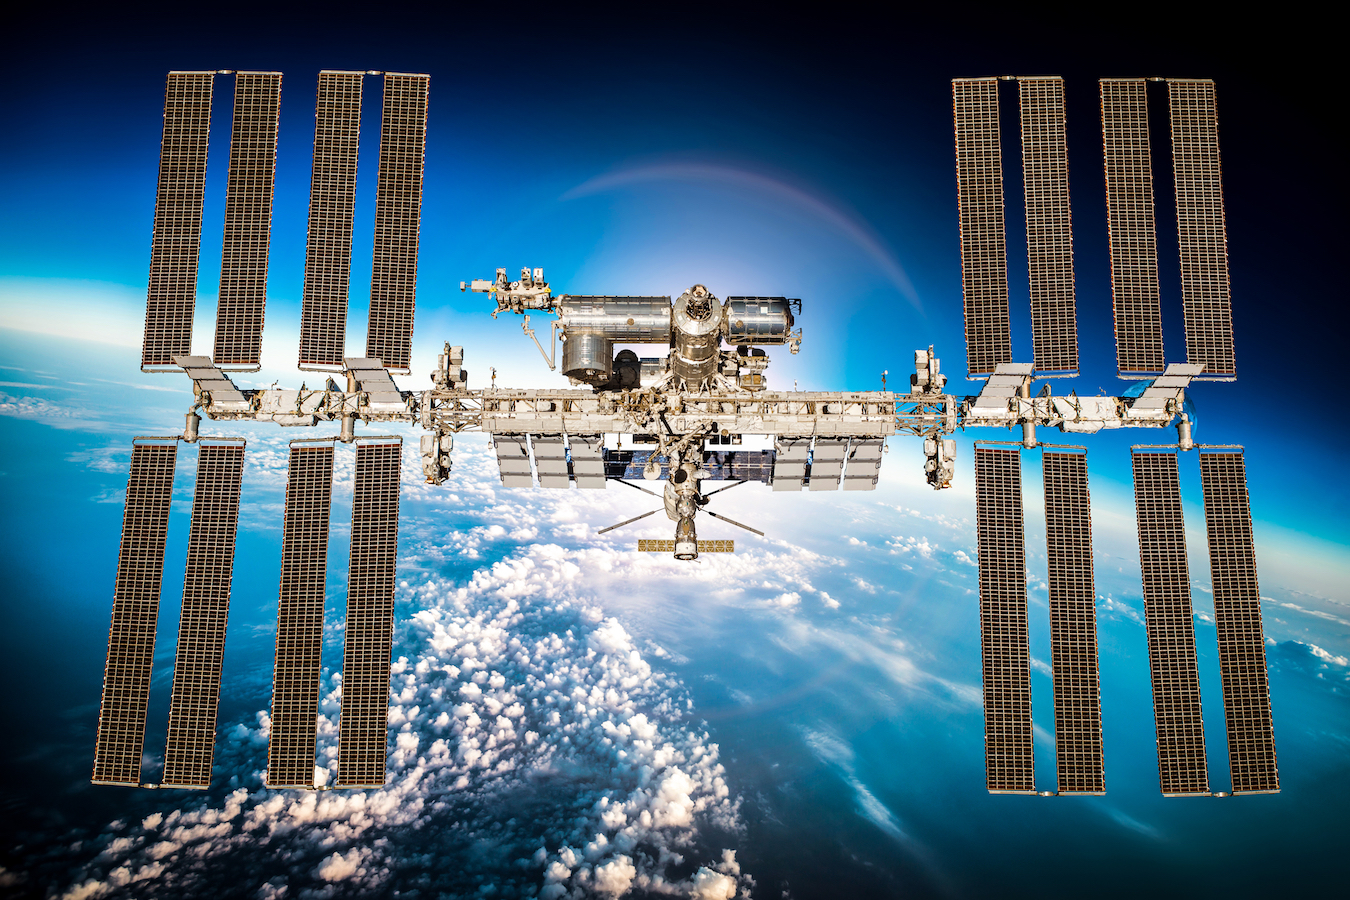 The Washington Post reports that the Trump admin aims to cut funding for the International Space Station and privatize the laboratory.